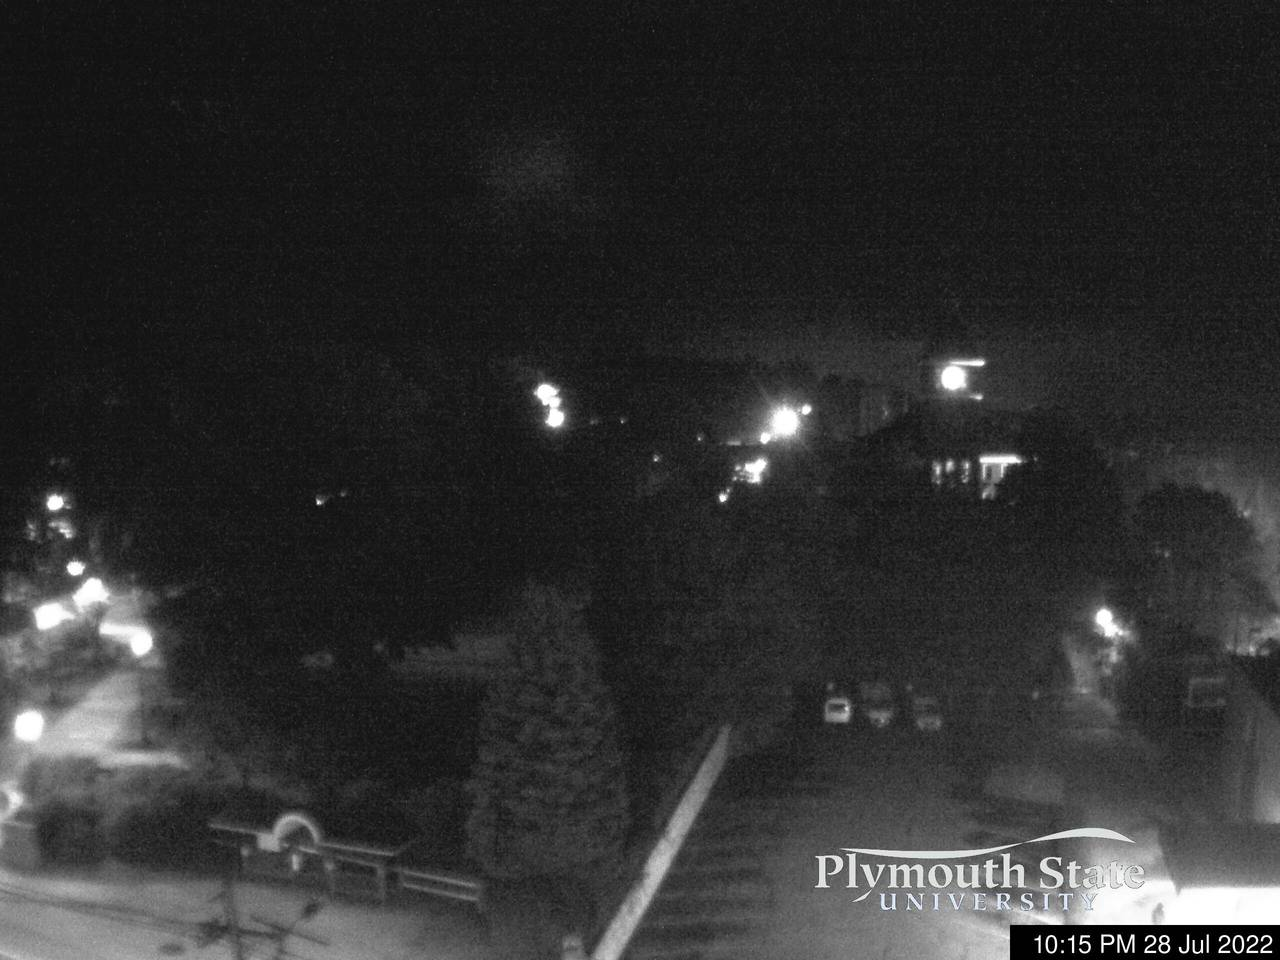 Plymouth State University Webcam